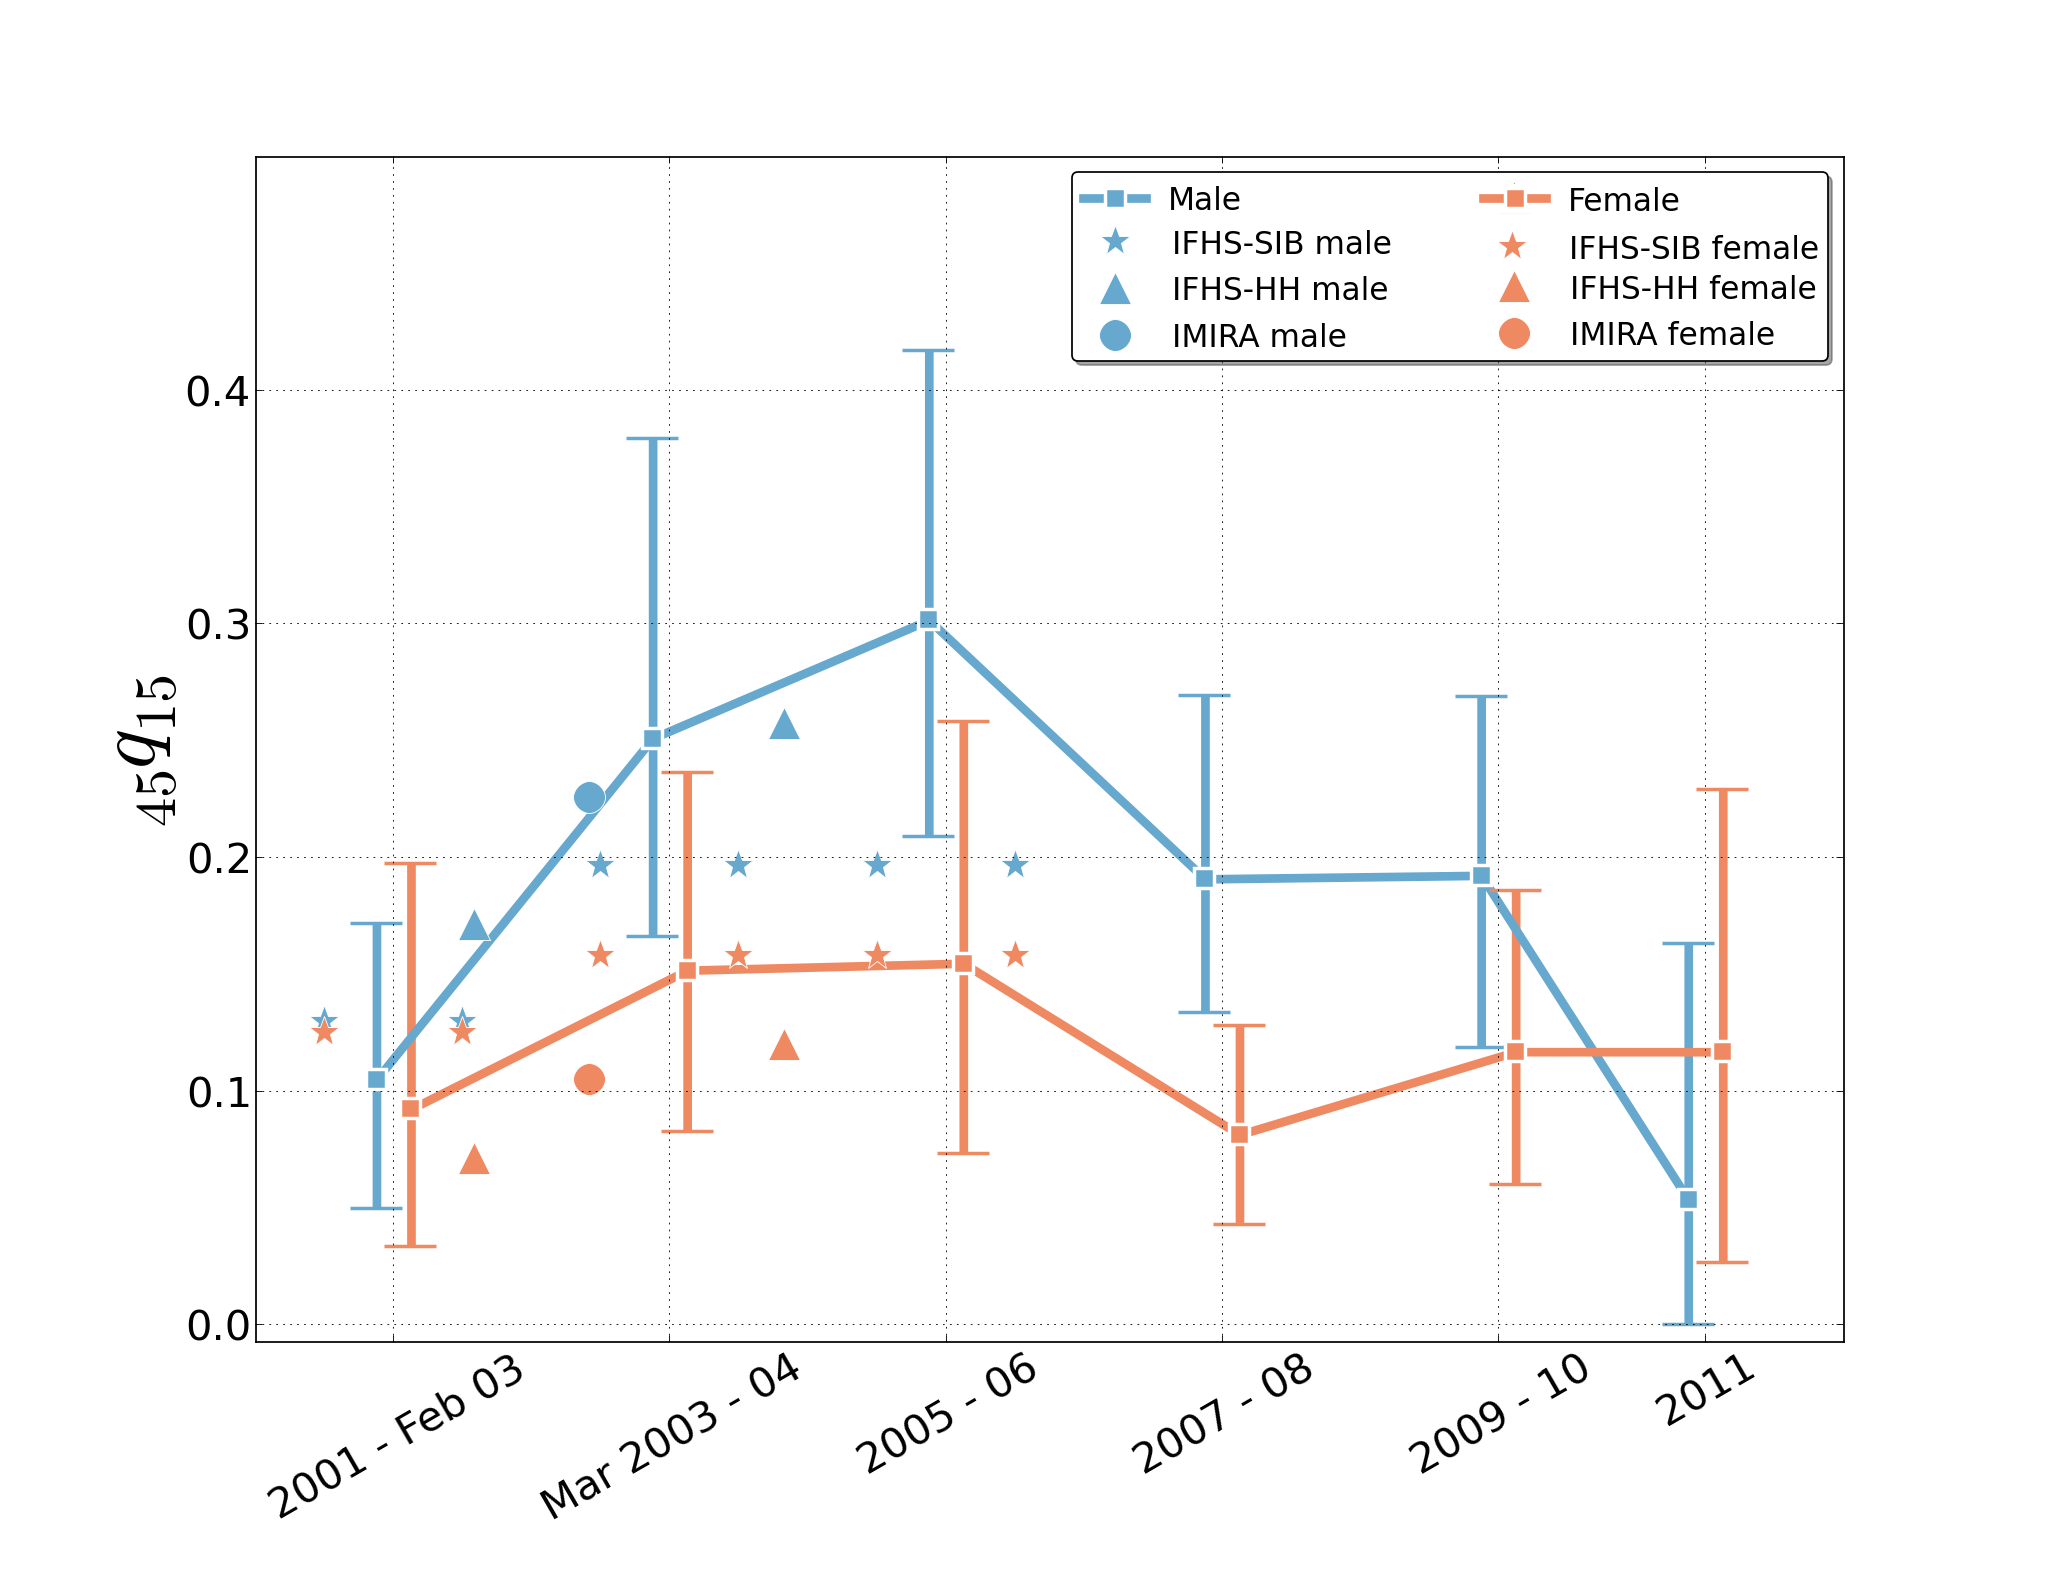 Estimates of the probability of dying between age 15 and age 60-y intervals, 2001–2011, from sibling histories as reported in the University Collaborative Iraq Mortality Study, with plotted estimates from other studies.